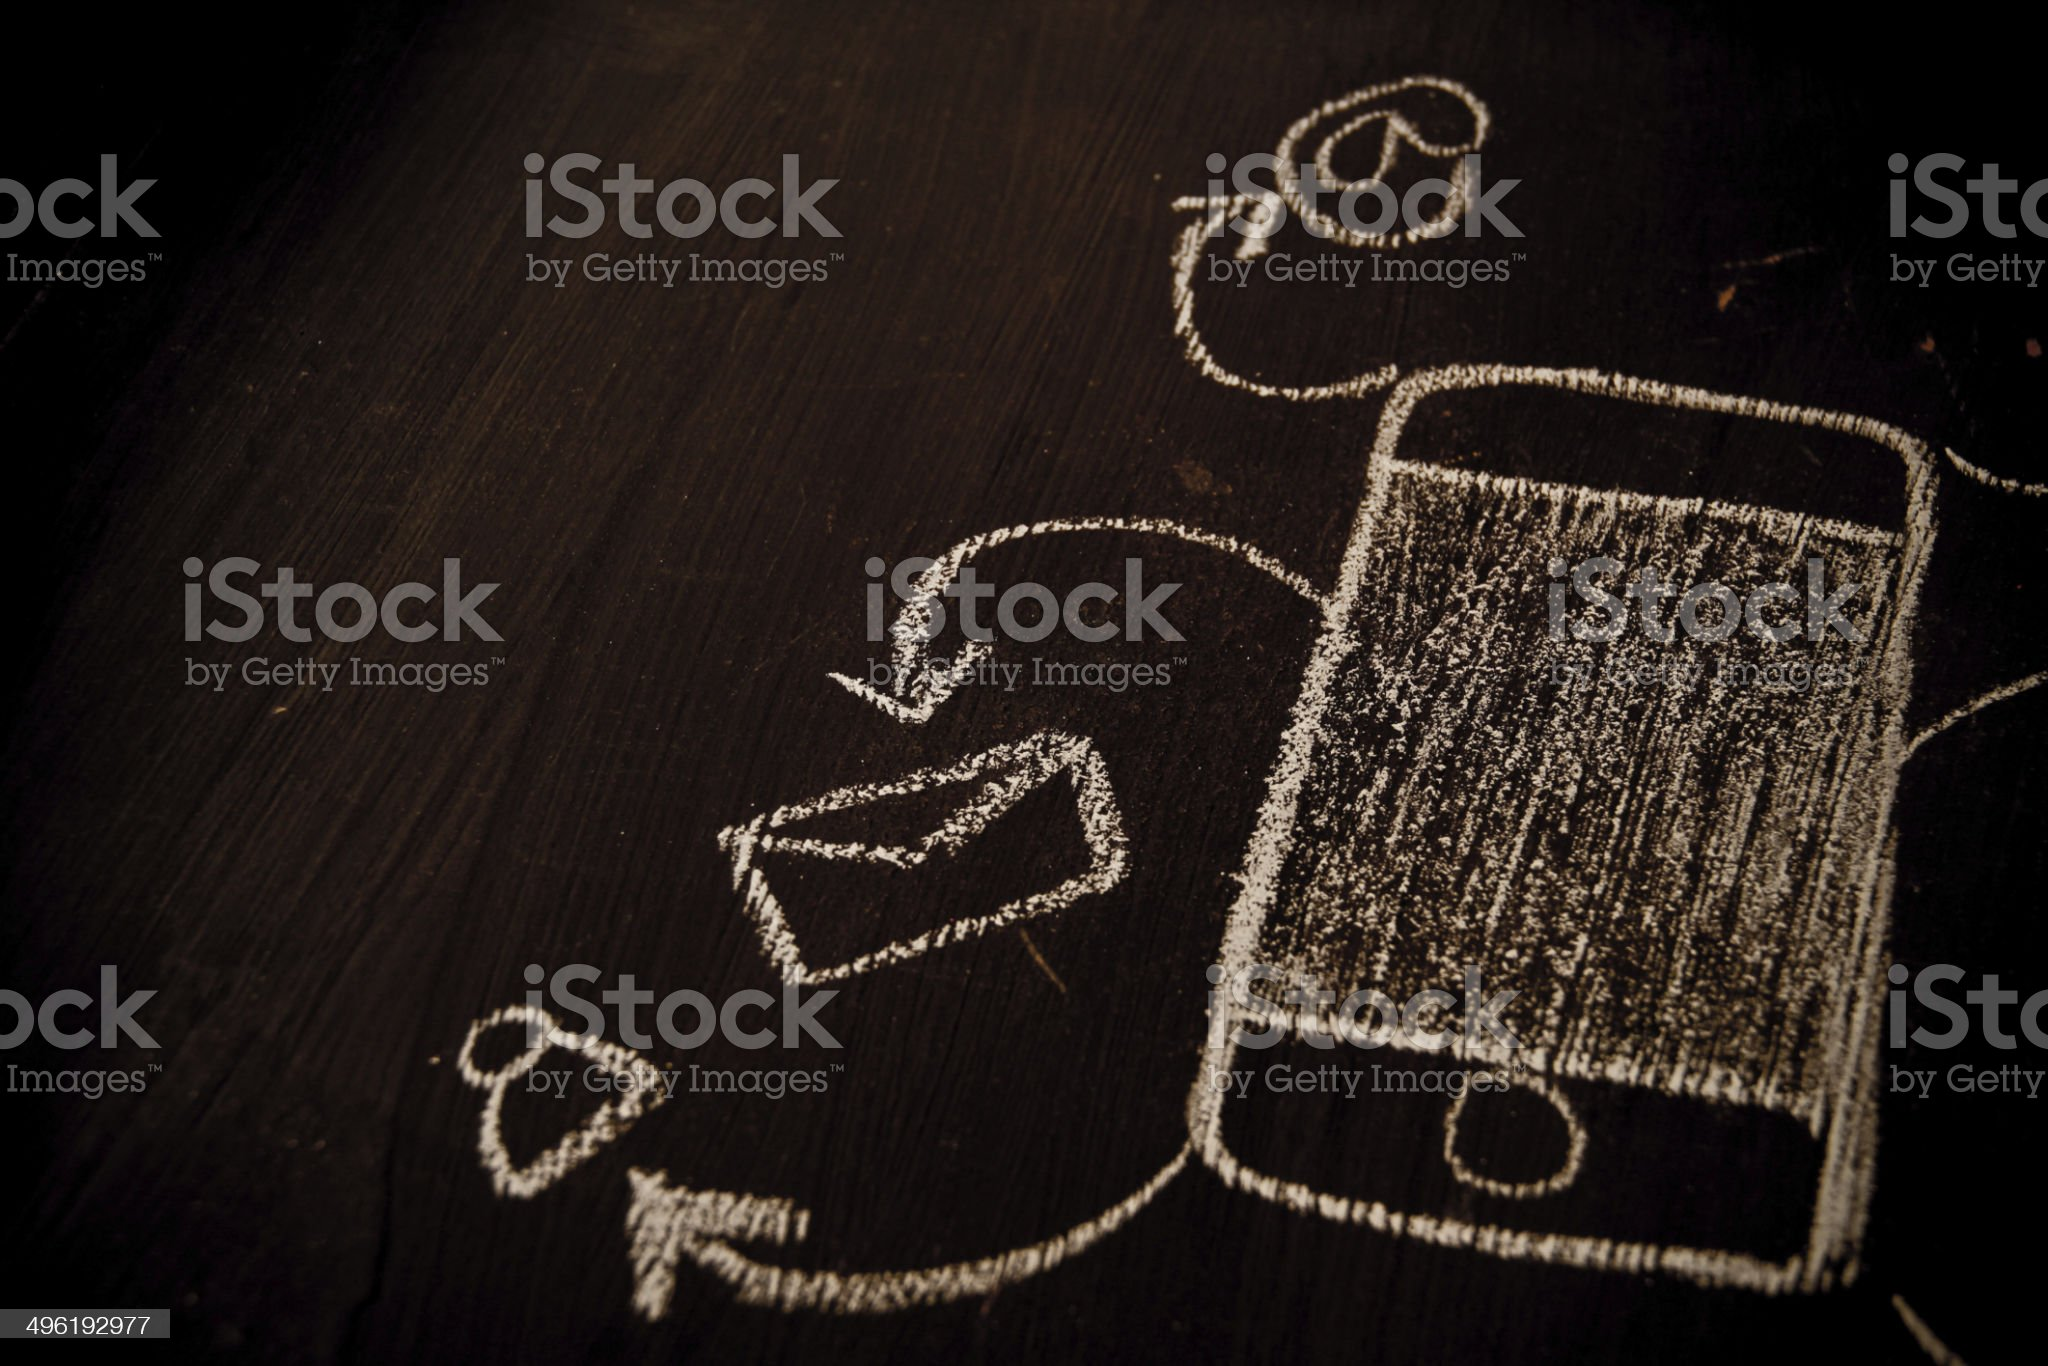 Drawing smart phone touchscreen with application icons royalty-free stock photo